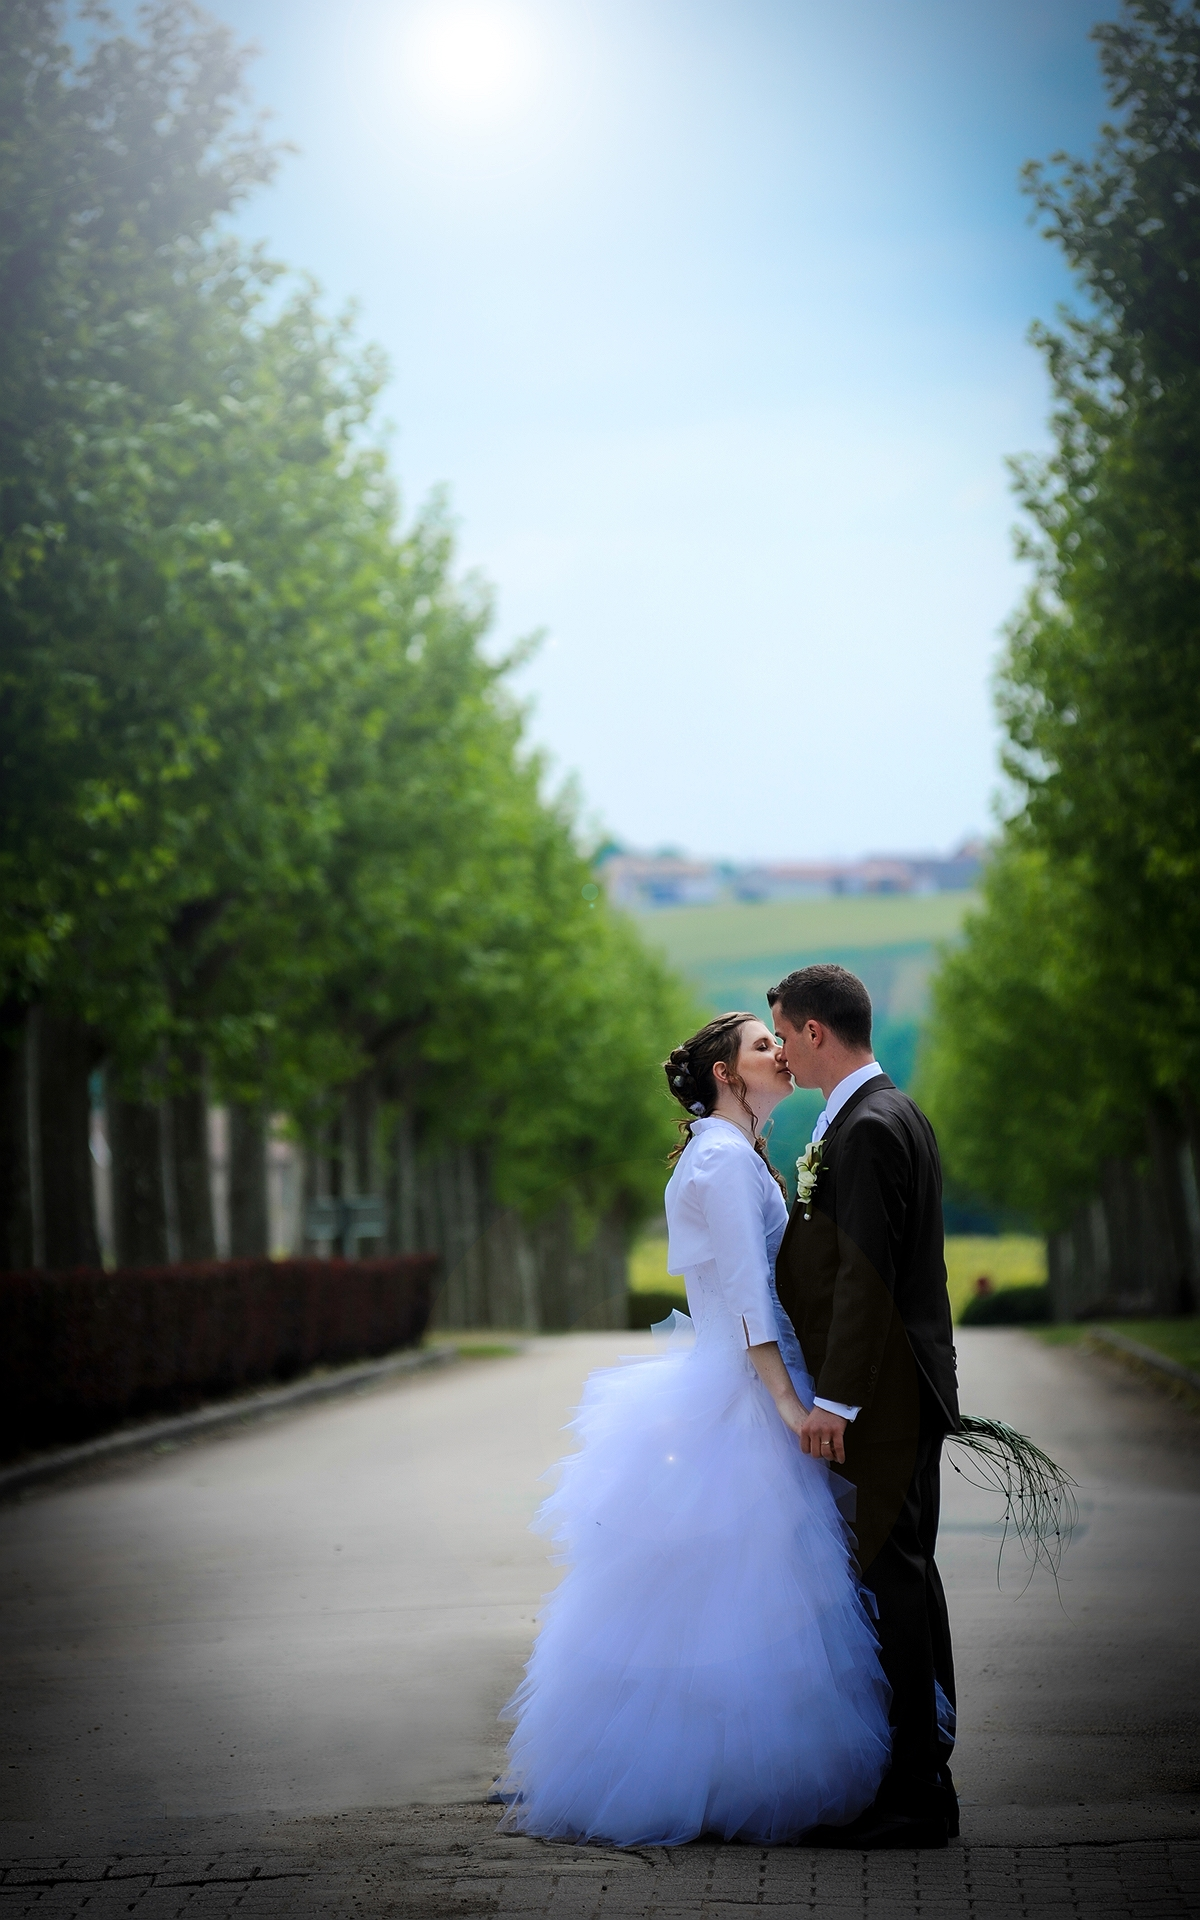 PHOTOGRAPHE MARIAGE AIN 01 - PHOTYS 008 (Sides 15-16)